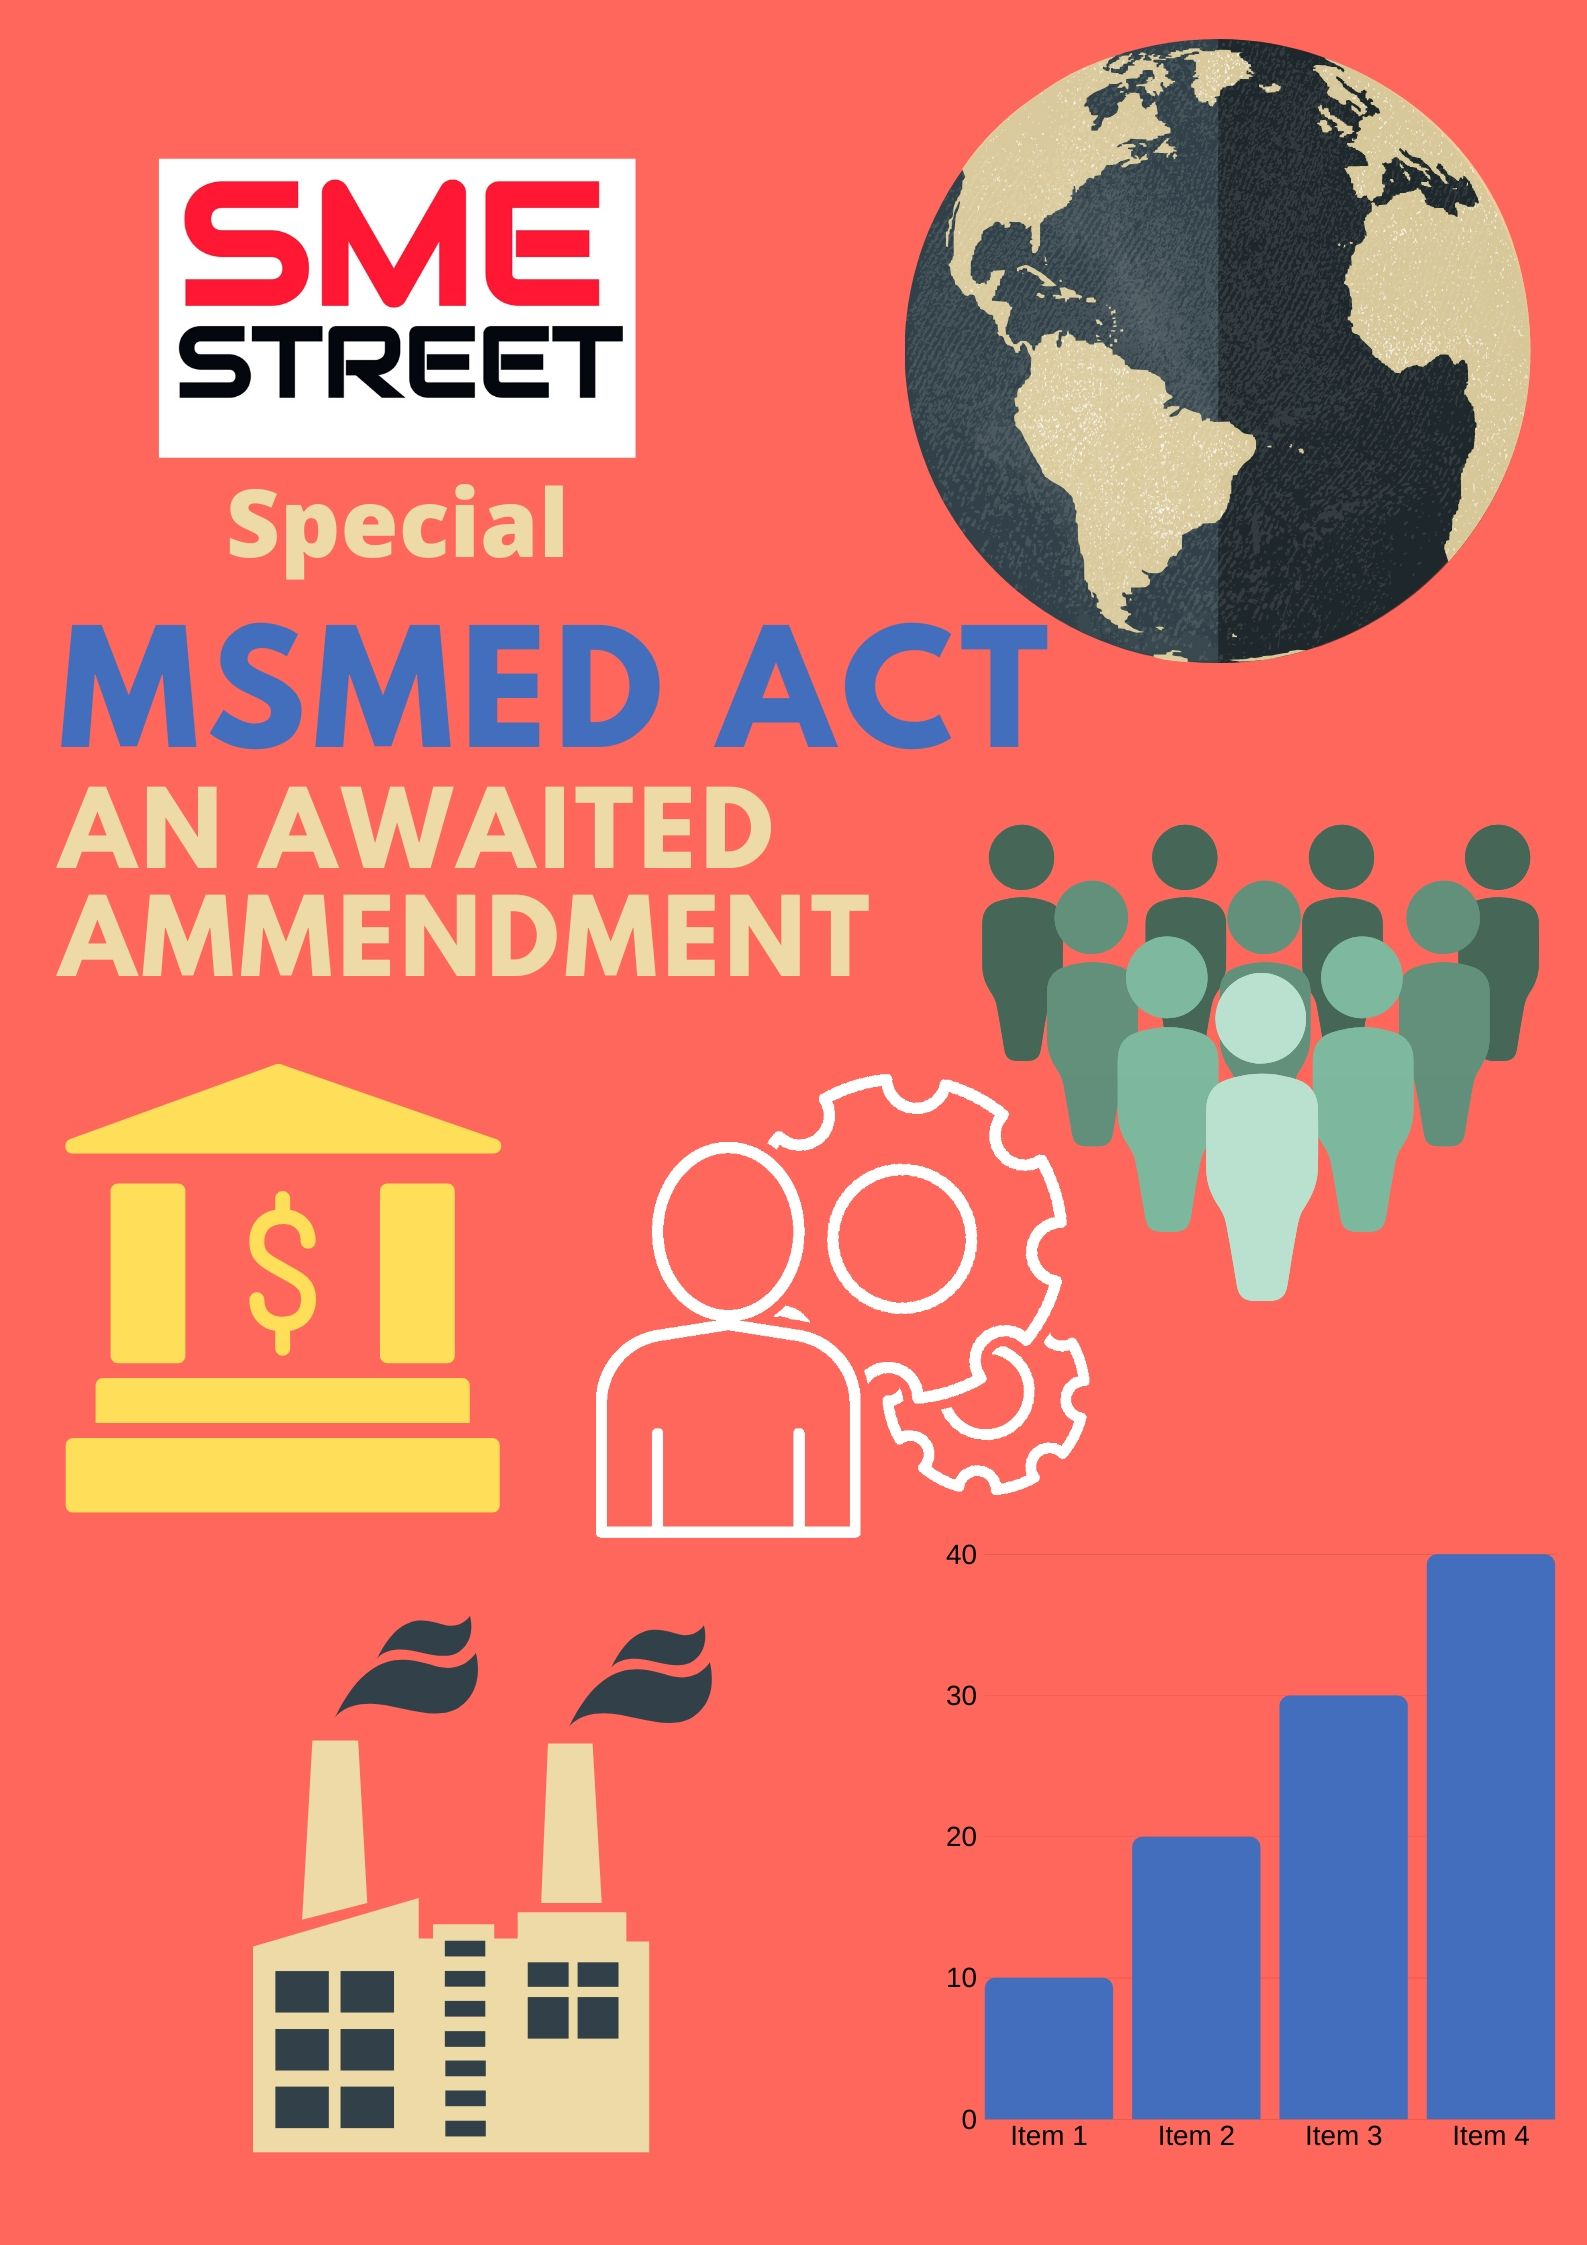 An Awaited Milestone In Evolution of MSMED Act Is Arriving